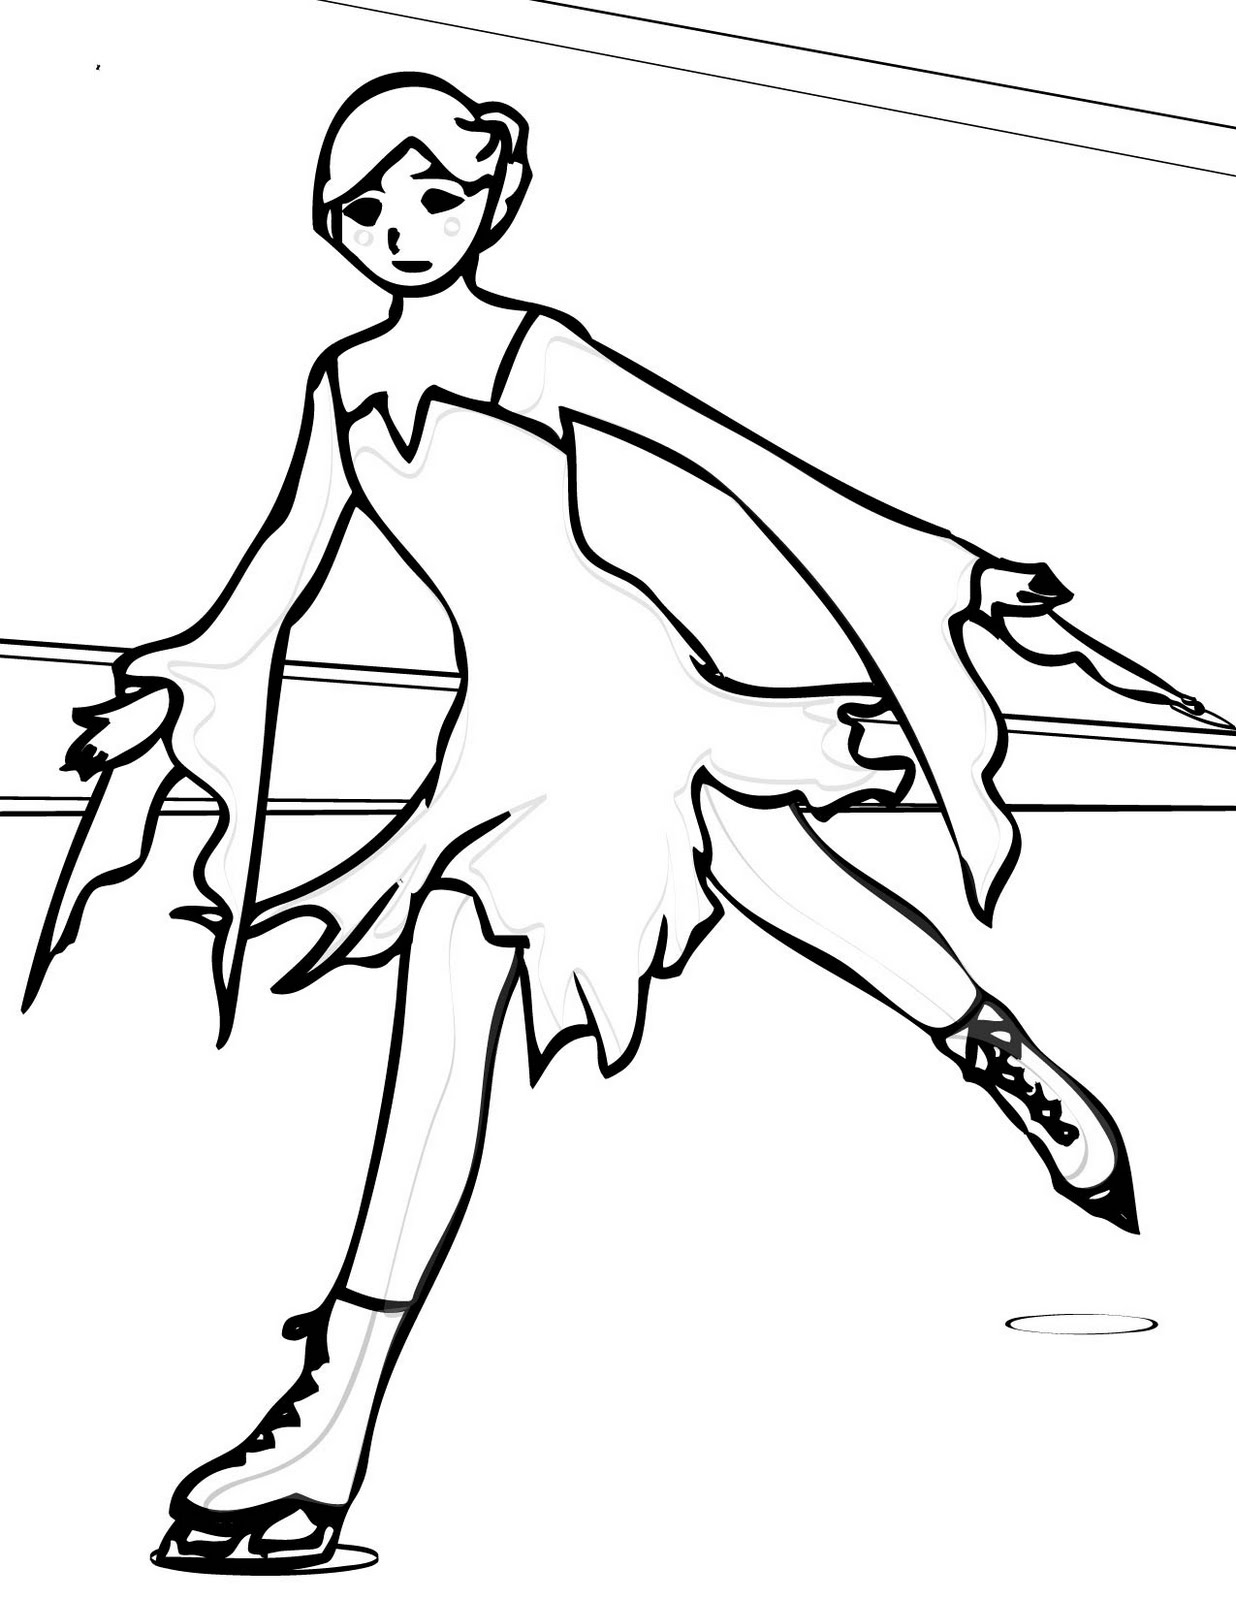 coloring pages ice - photo#24